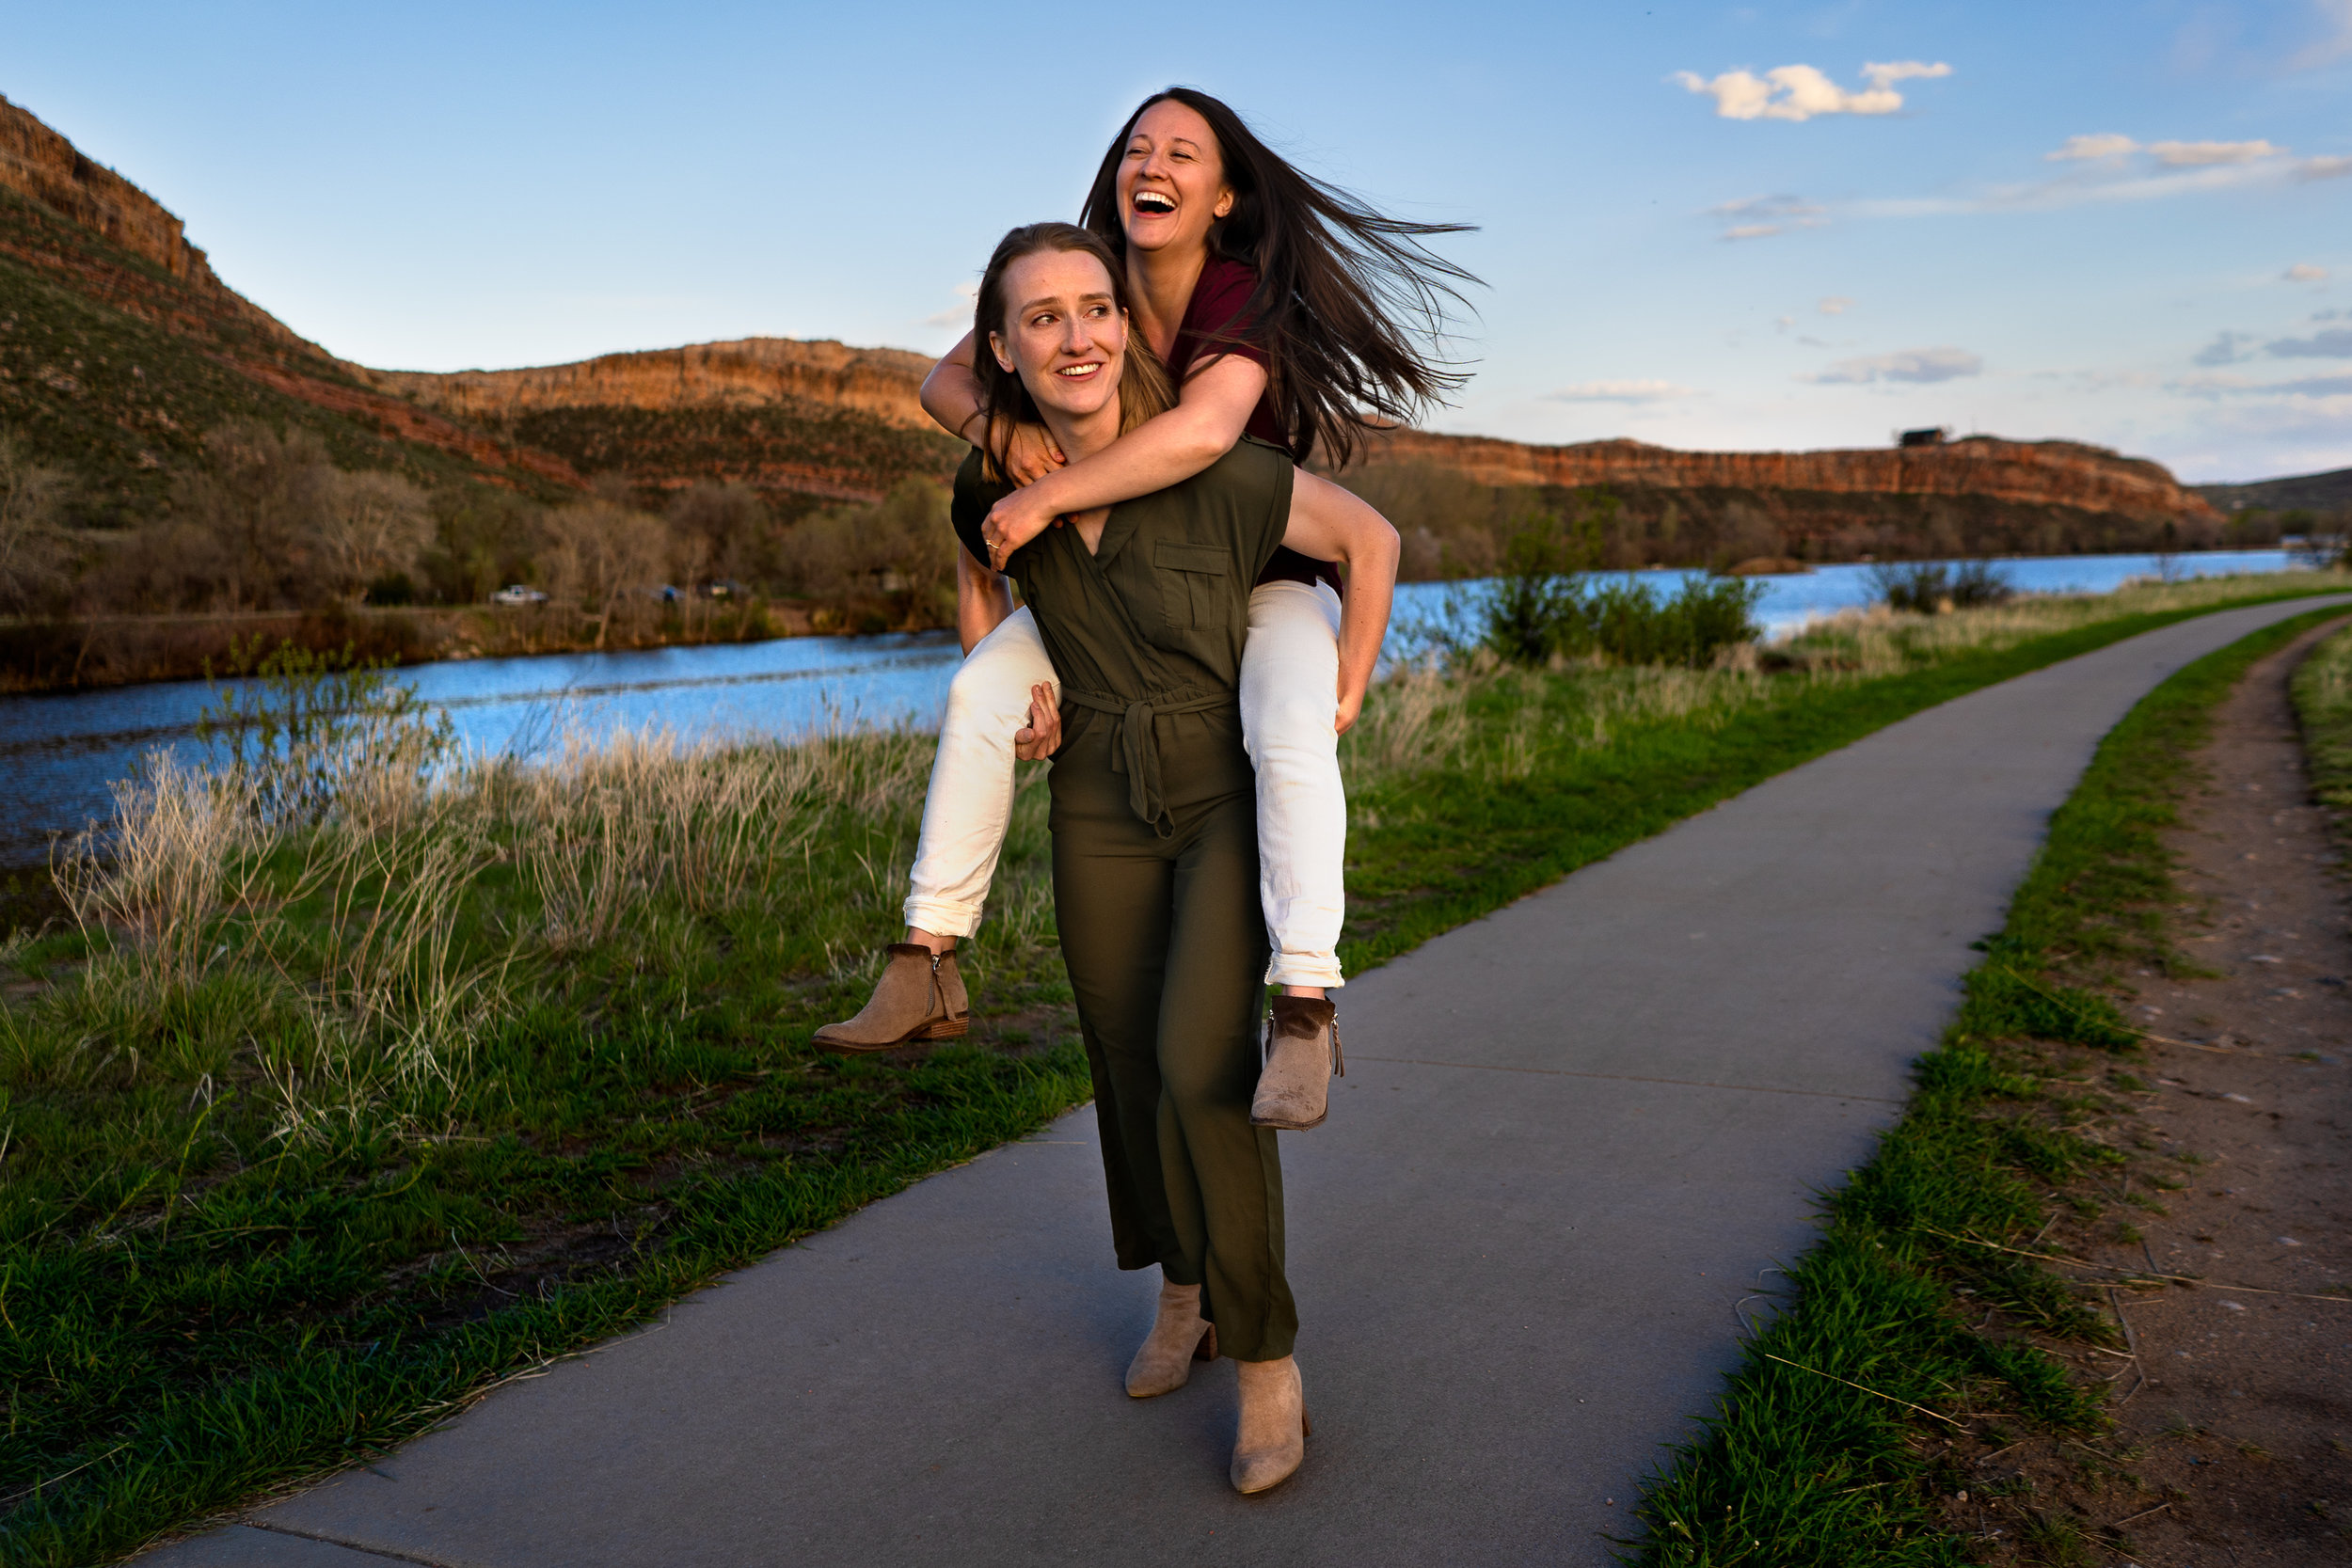 Poudre_Canyon_Engagement_Session-52.jpg